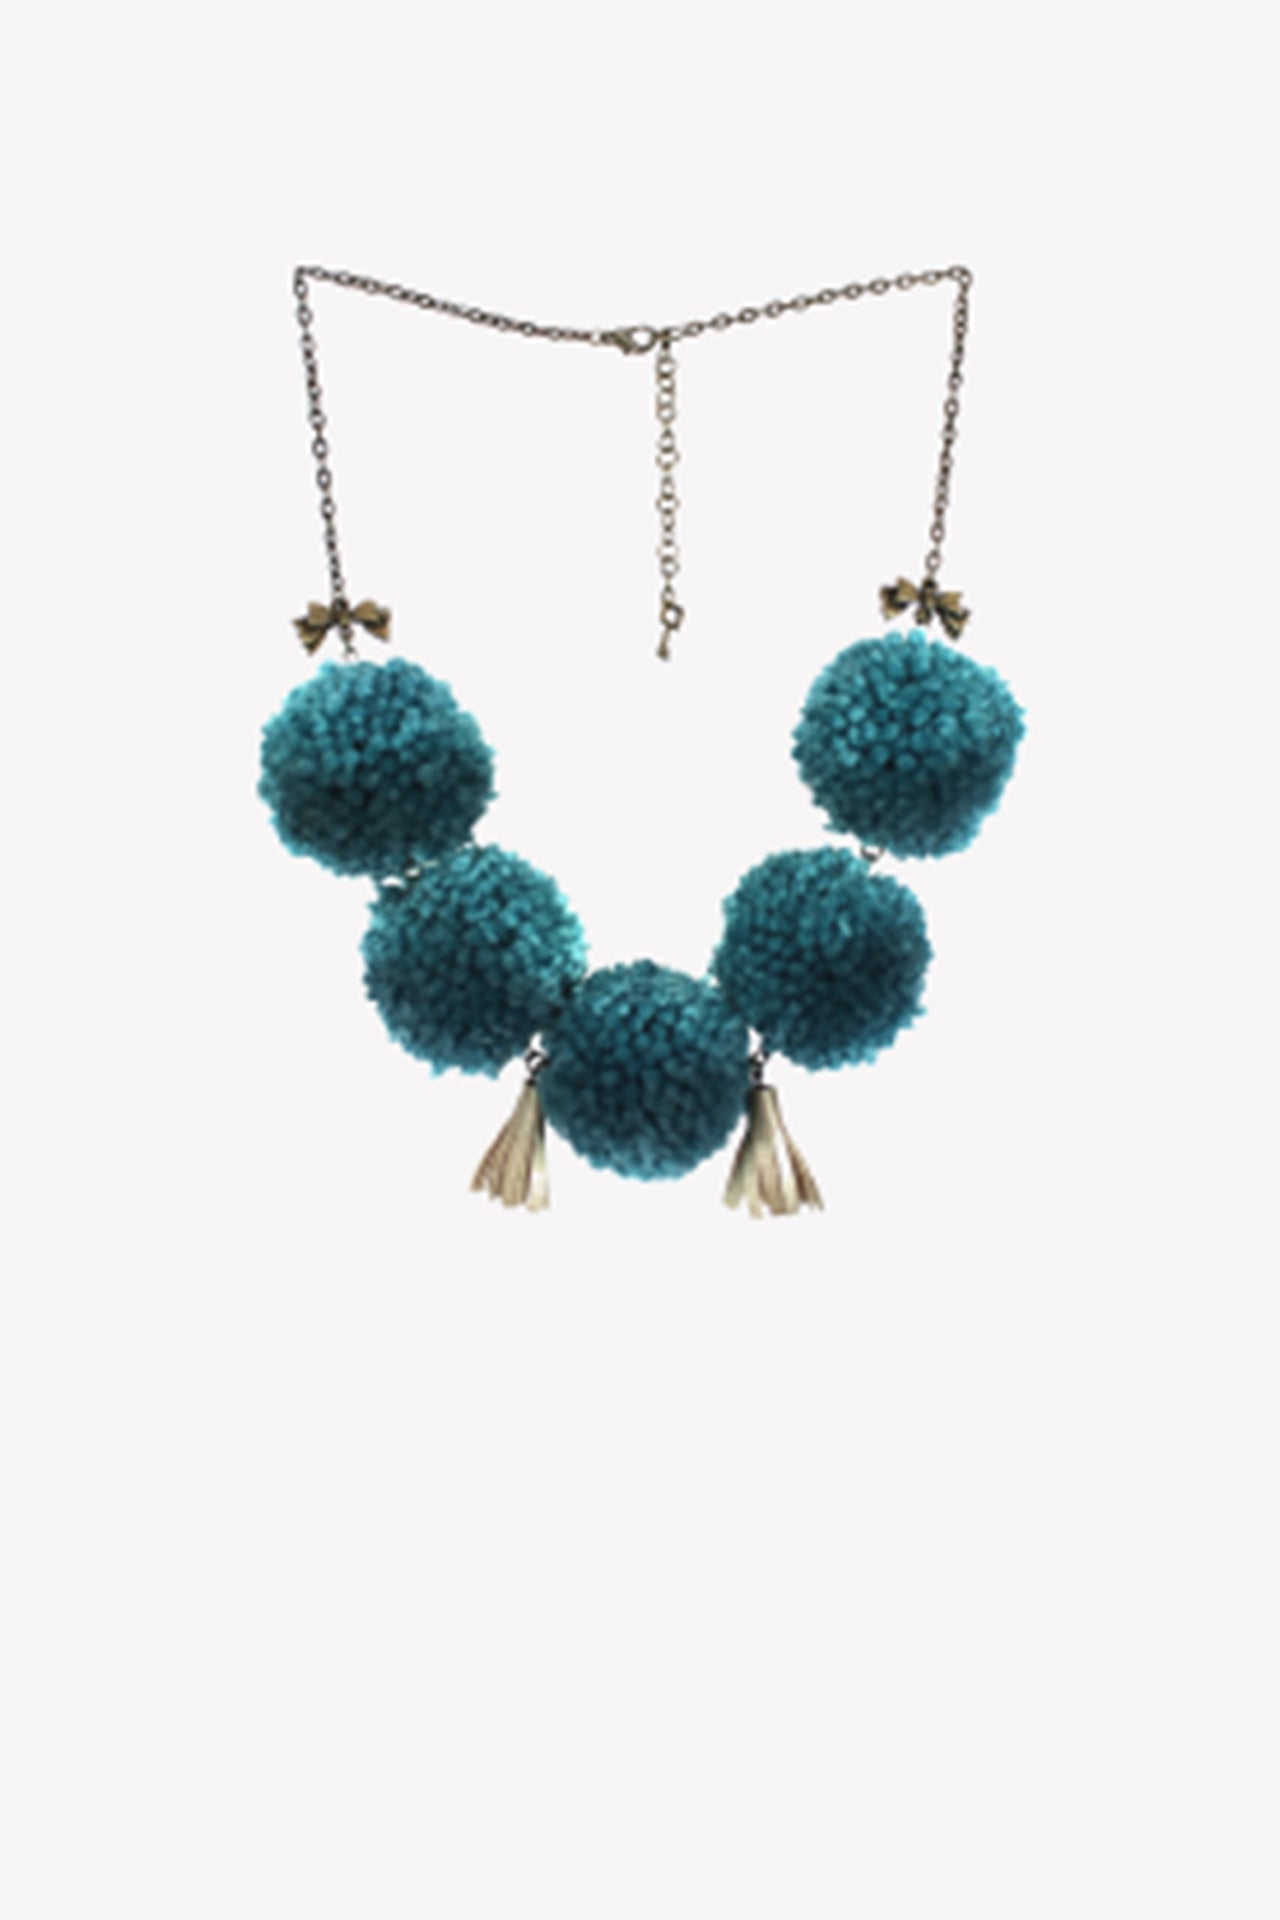 Short statement necklace with turquoise pompoms, sequins, leather tassels and gold bow charms